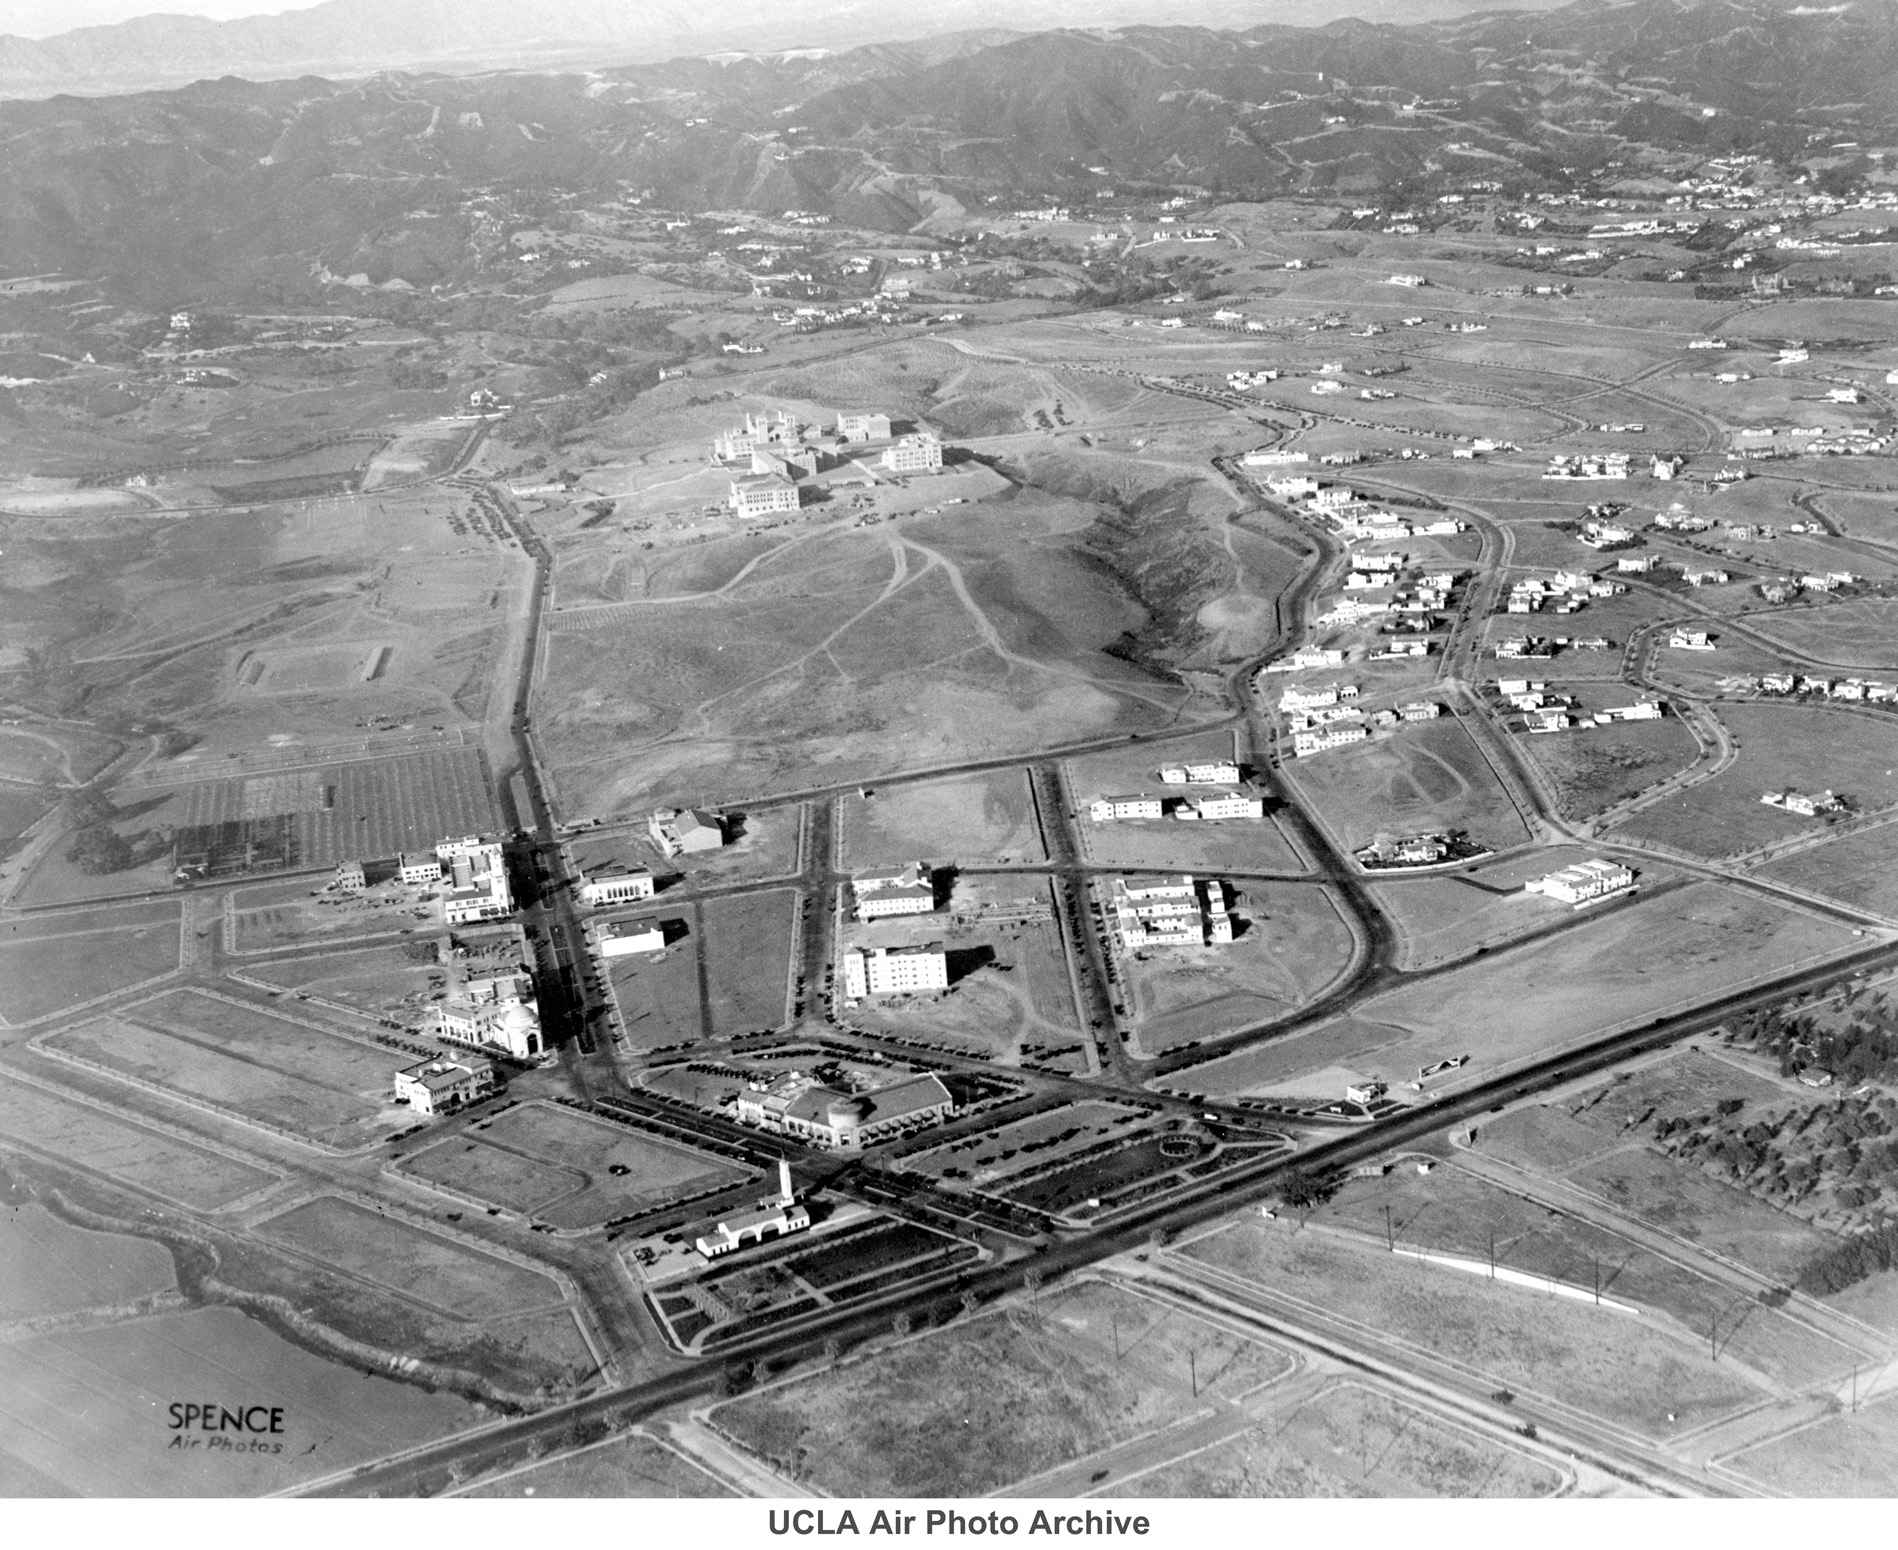 1929 Spence aerial photo of Westwood and UCLA